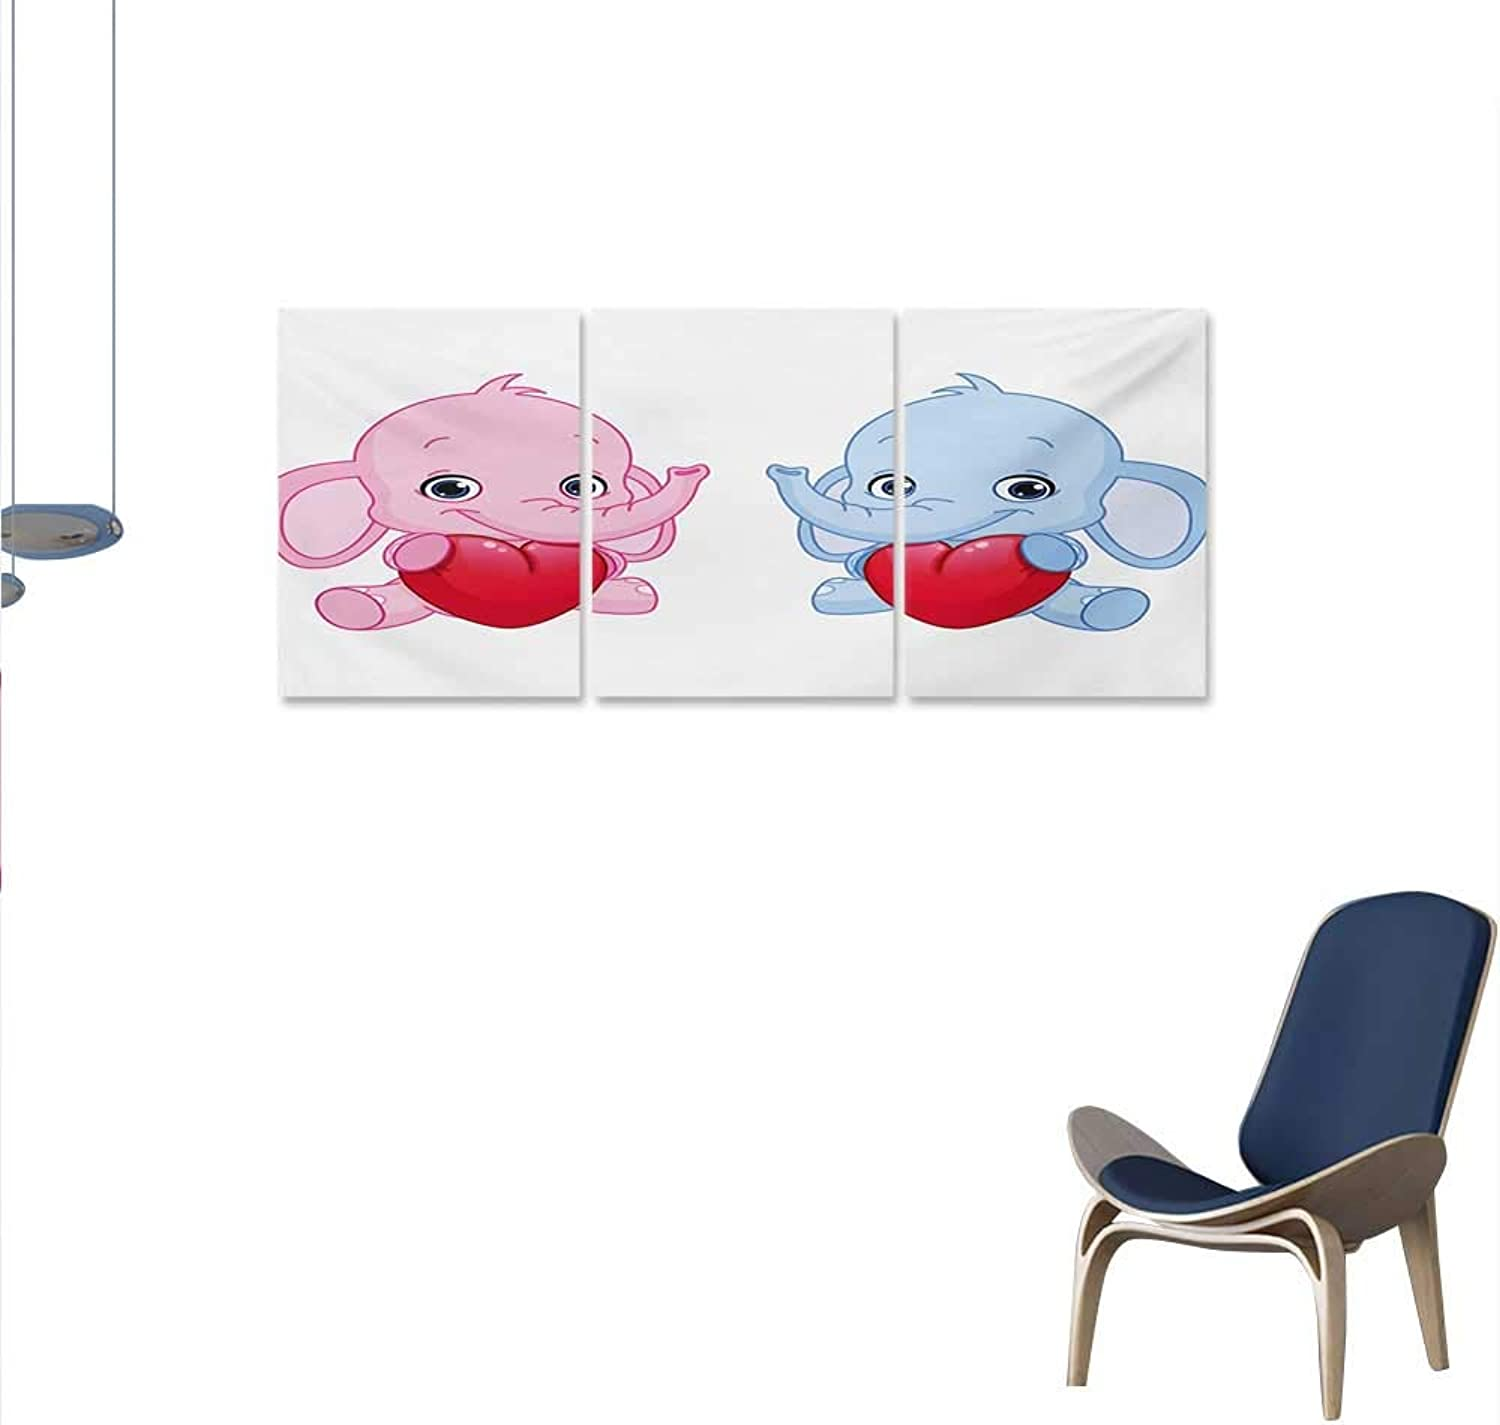 Elephant Nursery 3 Piece Canvas Wall Art Pink and bluee Kid Infant Elephants Holding Hearts Smiling Twins Print Paintings for Home Wall Office Decor 16 x32 x3pcs Pale Pink bluee White